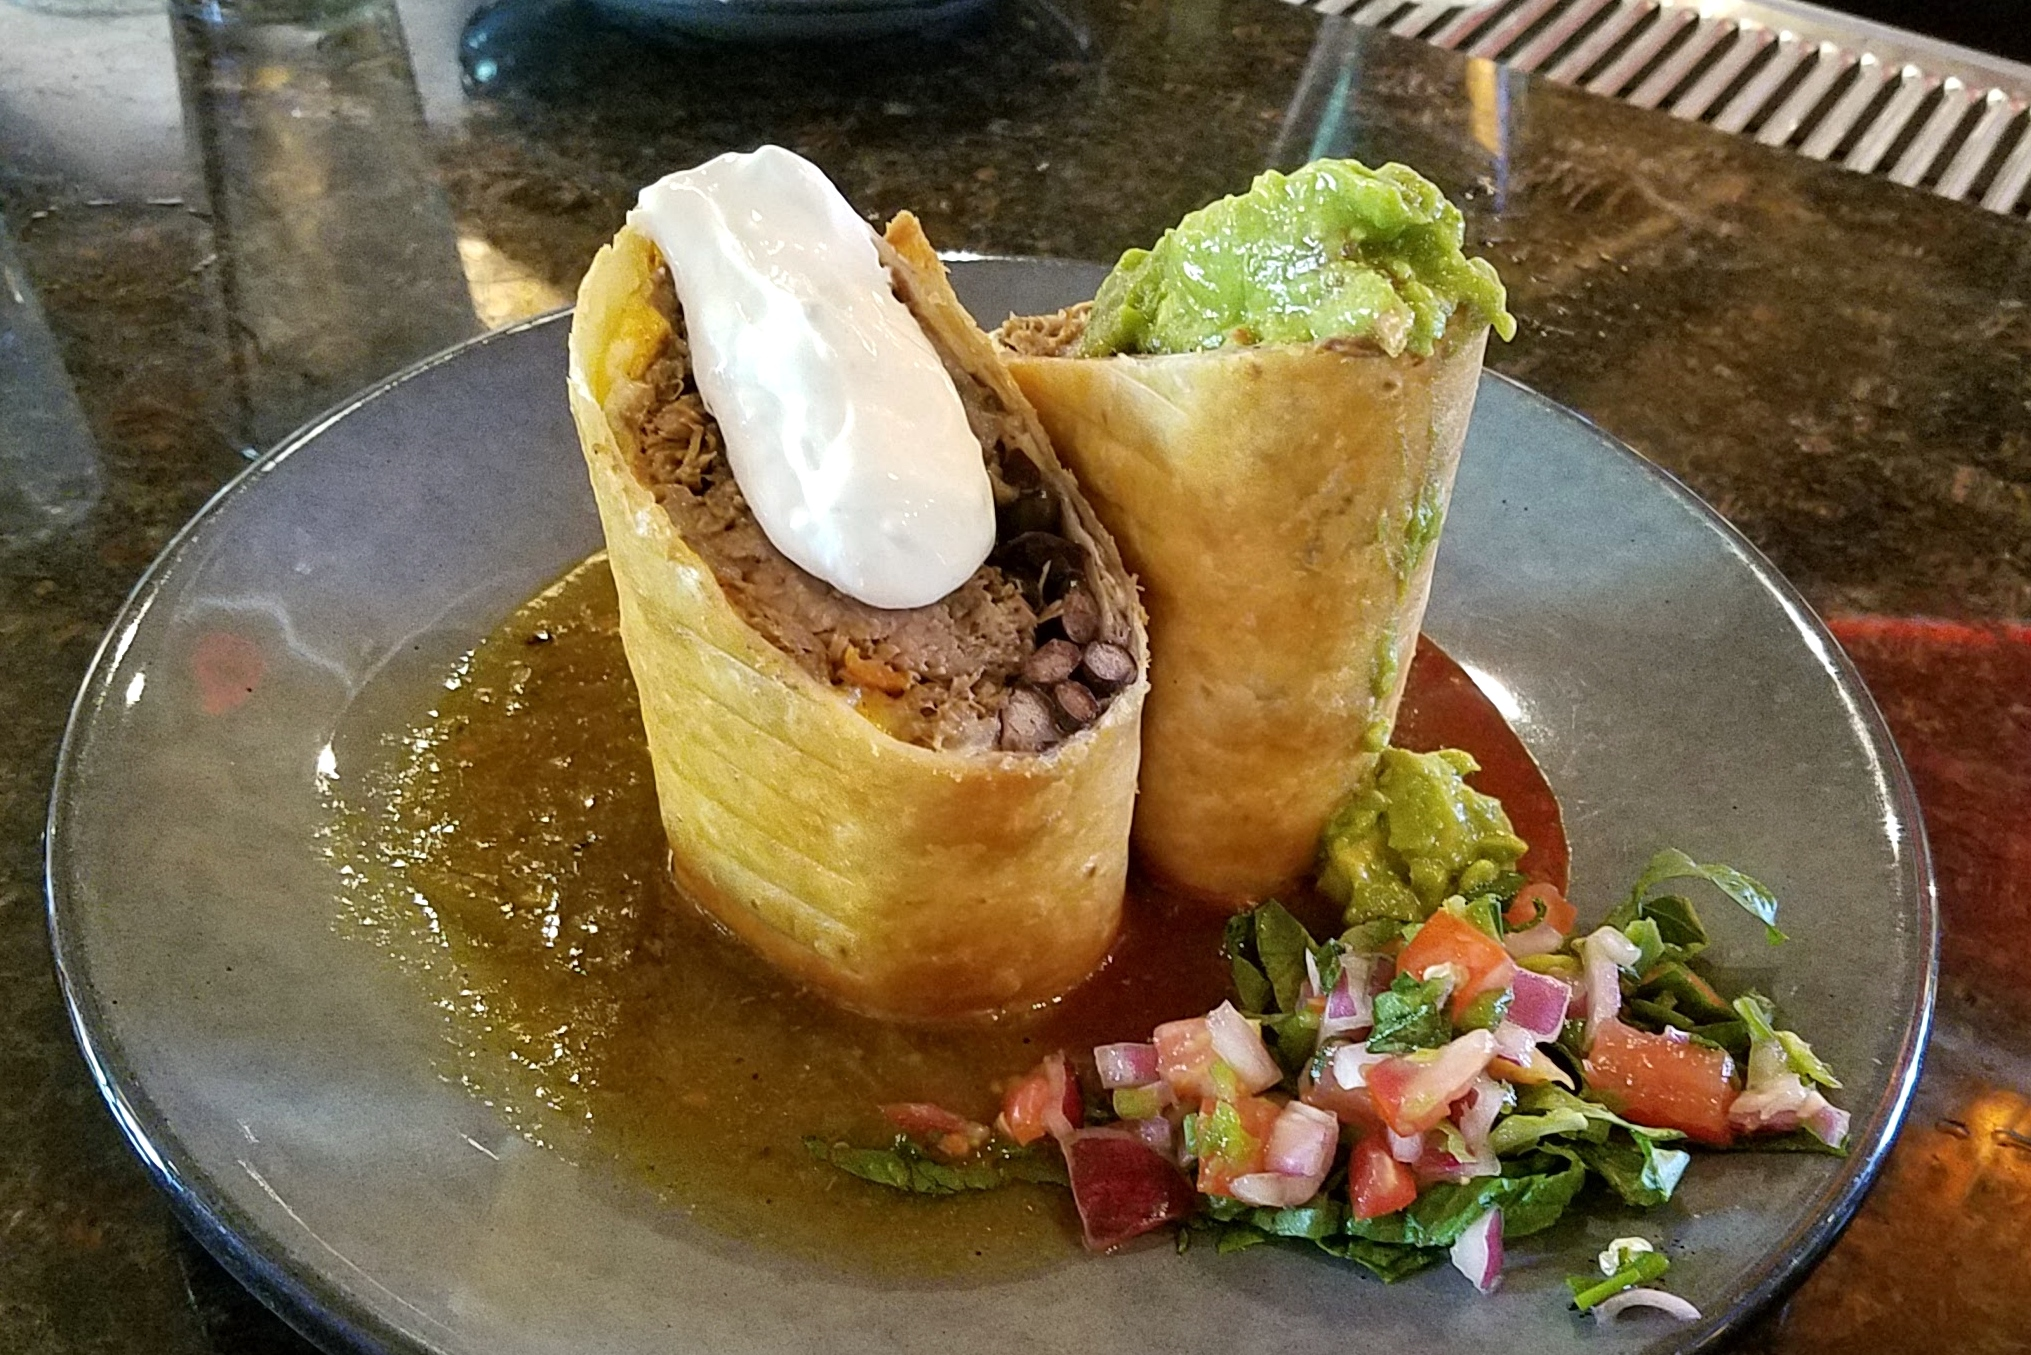 Barbacoa chimichanga with green and red chili